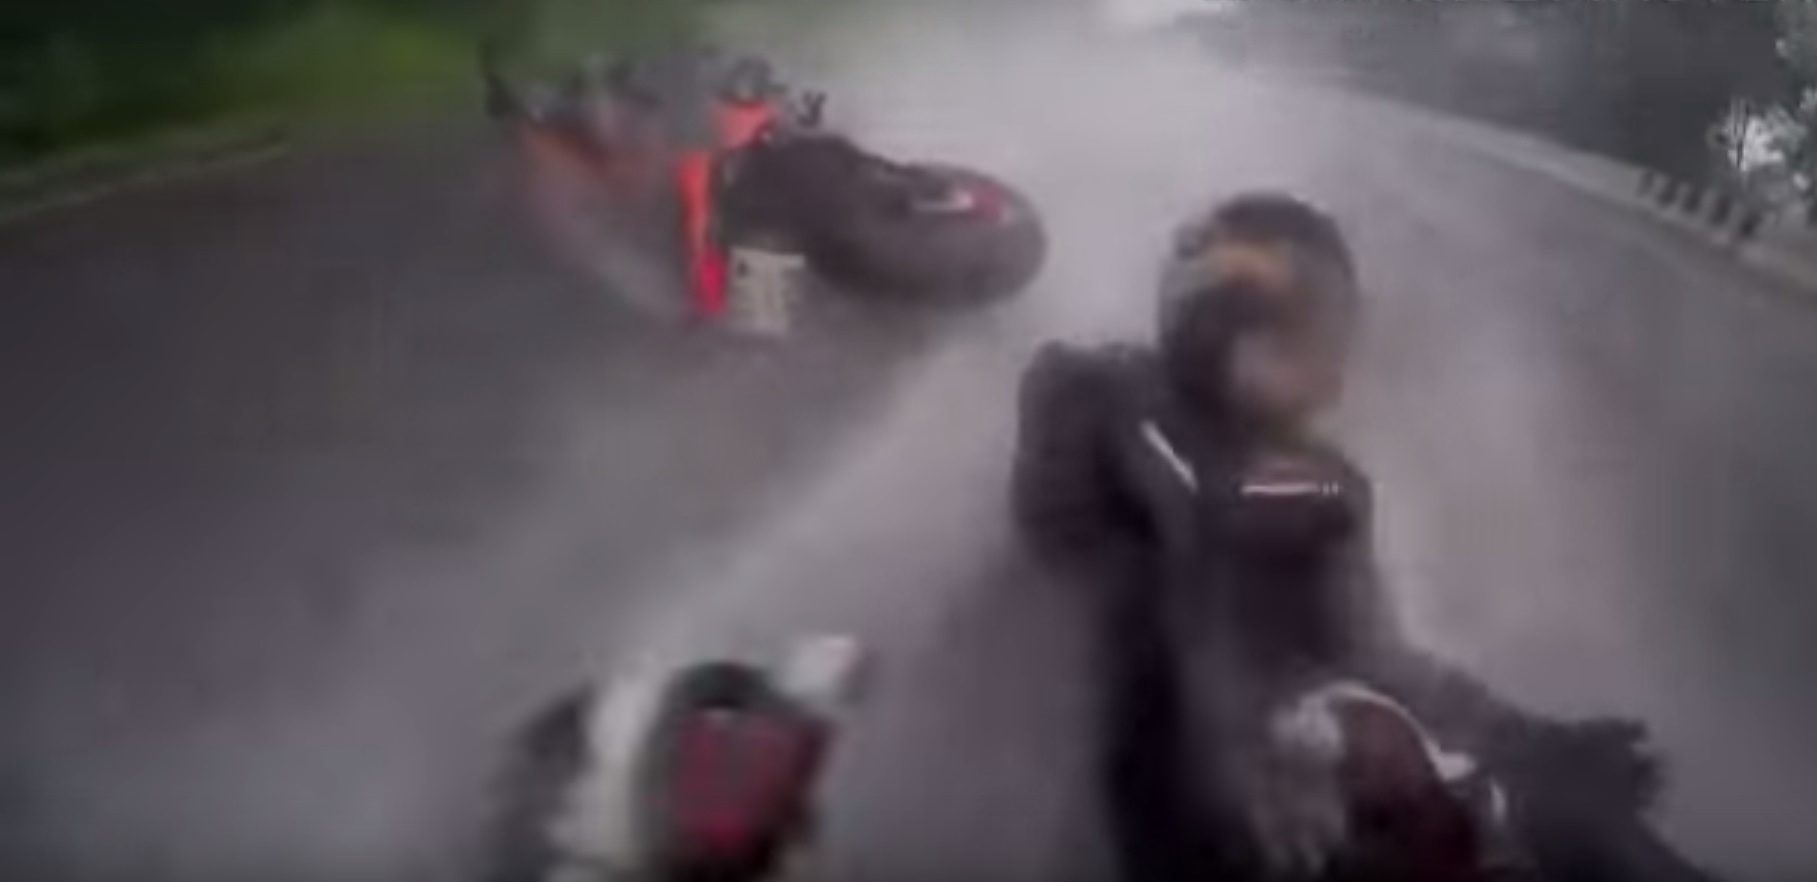 Guy saves girl while crashing on a motorcycle – Insane!